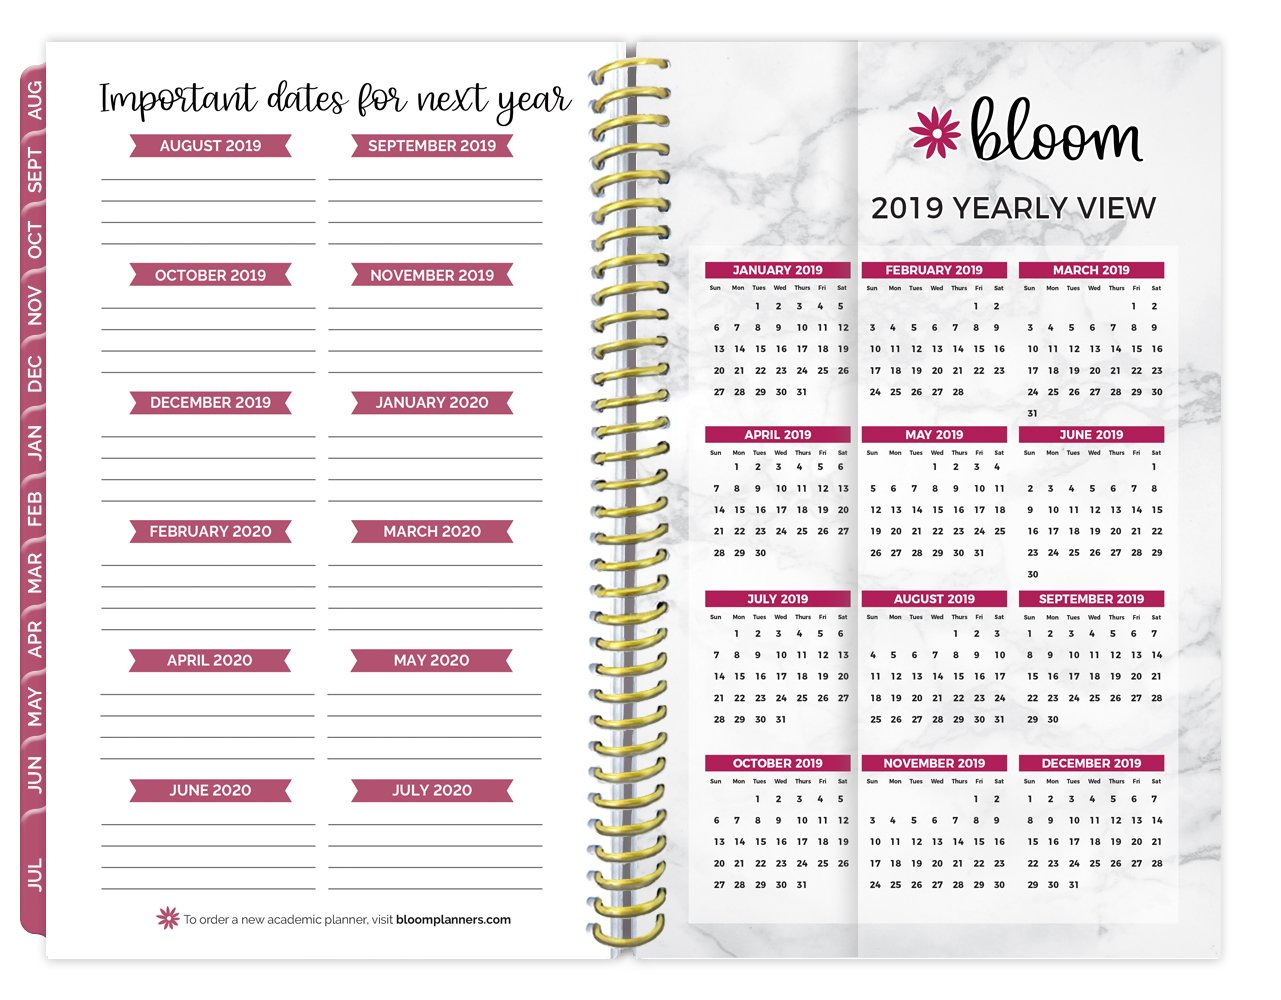 bloom daily planners 2018-2019 Academic Year Day Planner - Monthly and Weekly Calendar Book - Inspirational Dated Agenda Organizer - (August 2018 - July 2019) - 6'' x 8.25'' - Marble by bloom daily planners (Image #5)